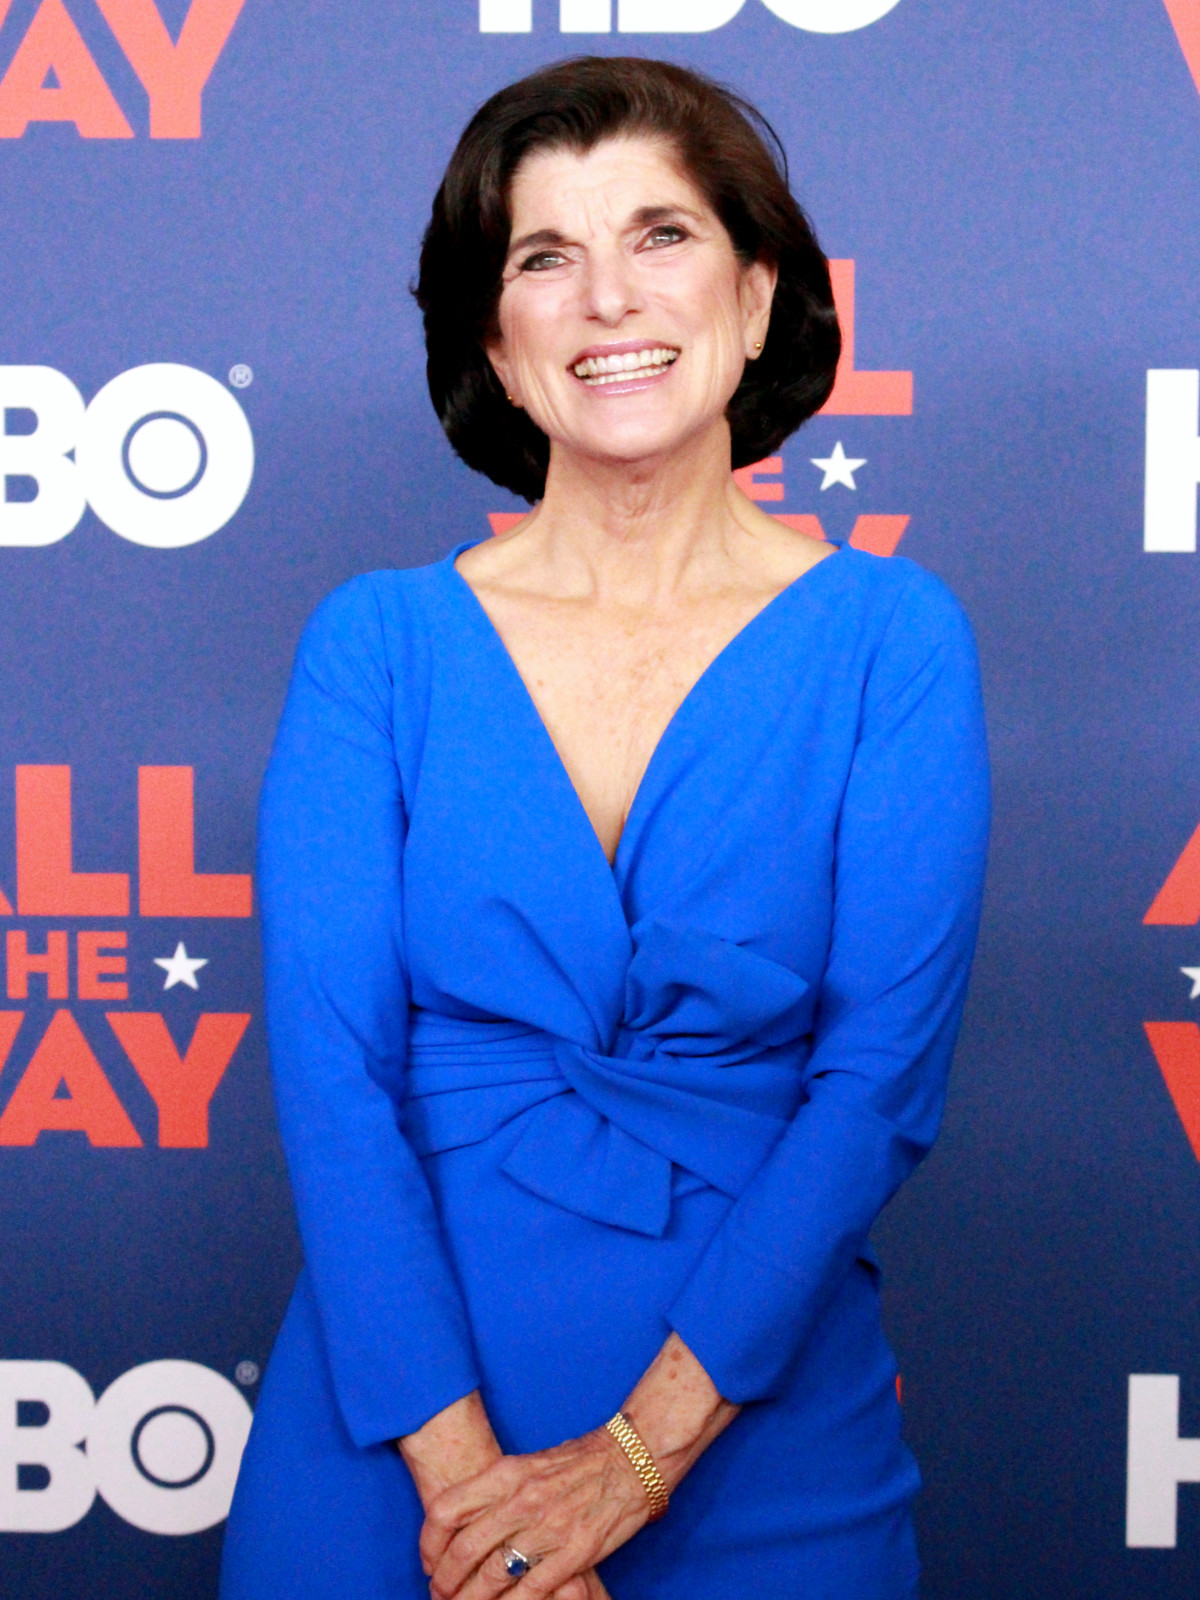 Austin premiere HBO film All the Way LBJ red carpet Luci Baines Johnson